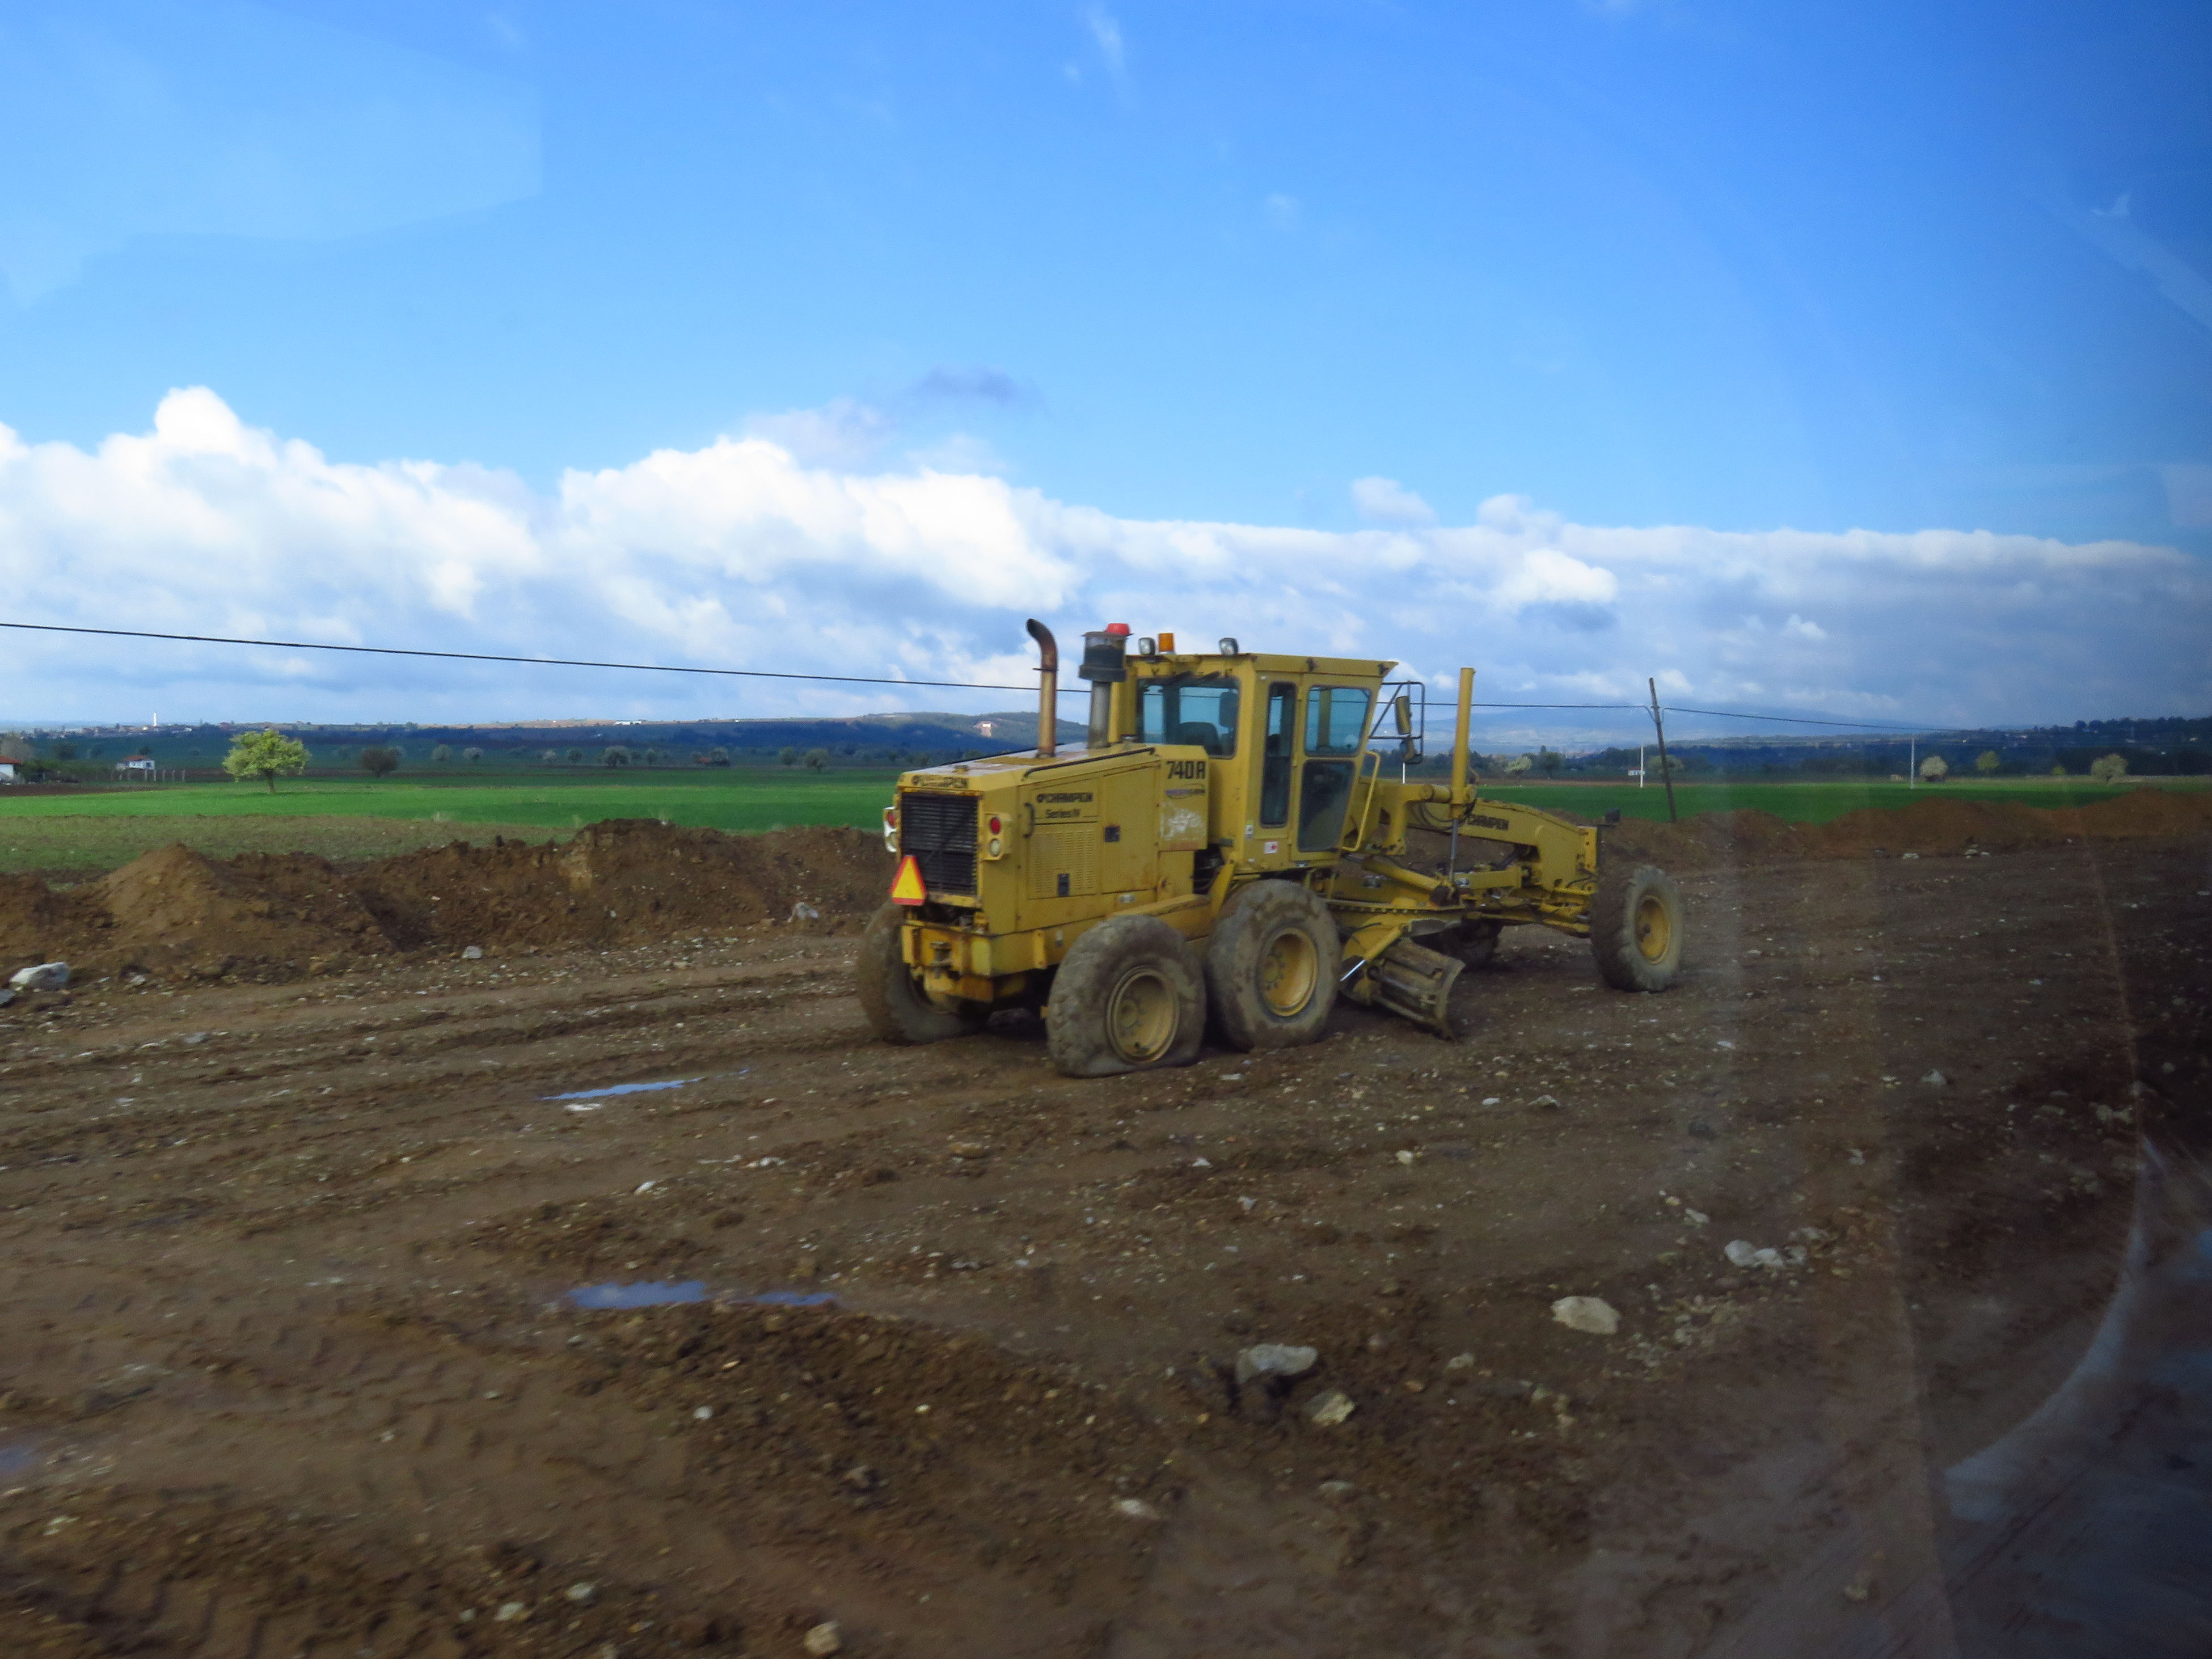 sky, cloud - sky, construction site, agricultural machinery, machinery, development, field, industry, day, construction machinery, transportation, landscape, outdoors, no people, nature, combine harvester